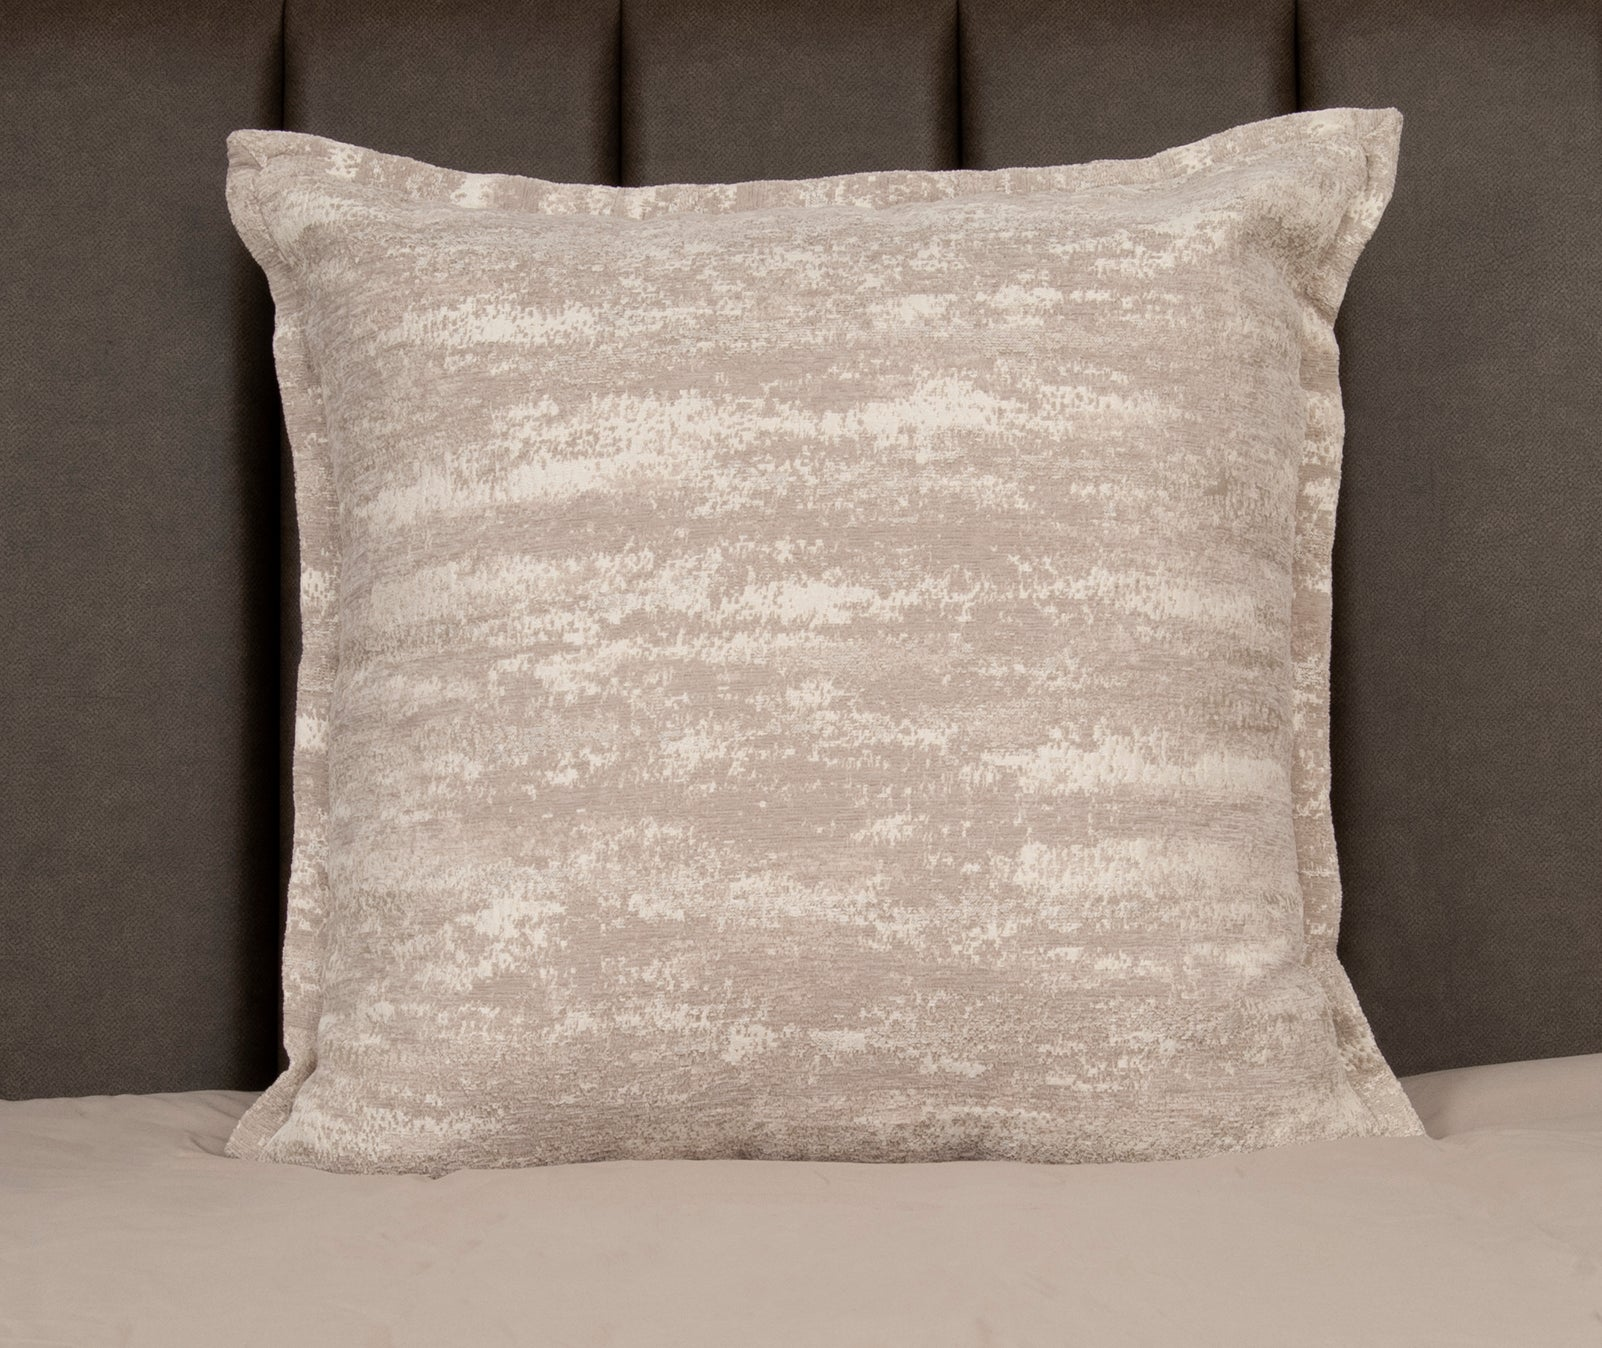 26 x 26 Bronsa Opal Pillow